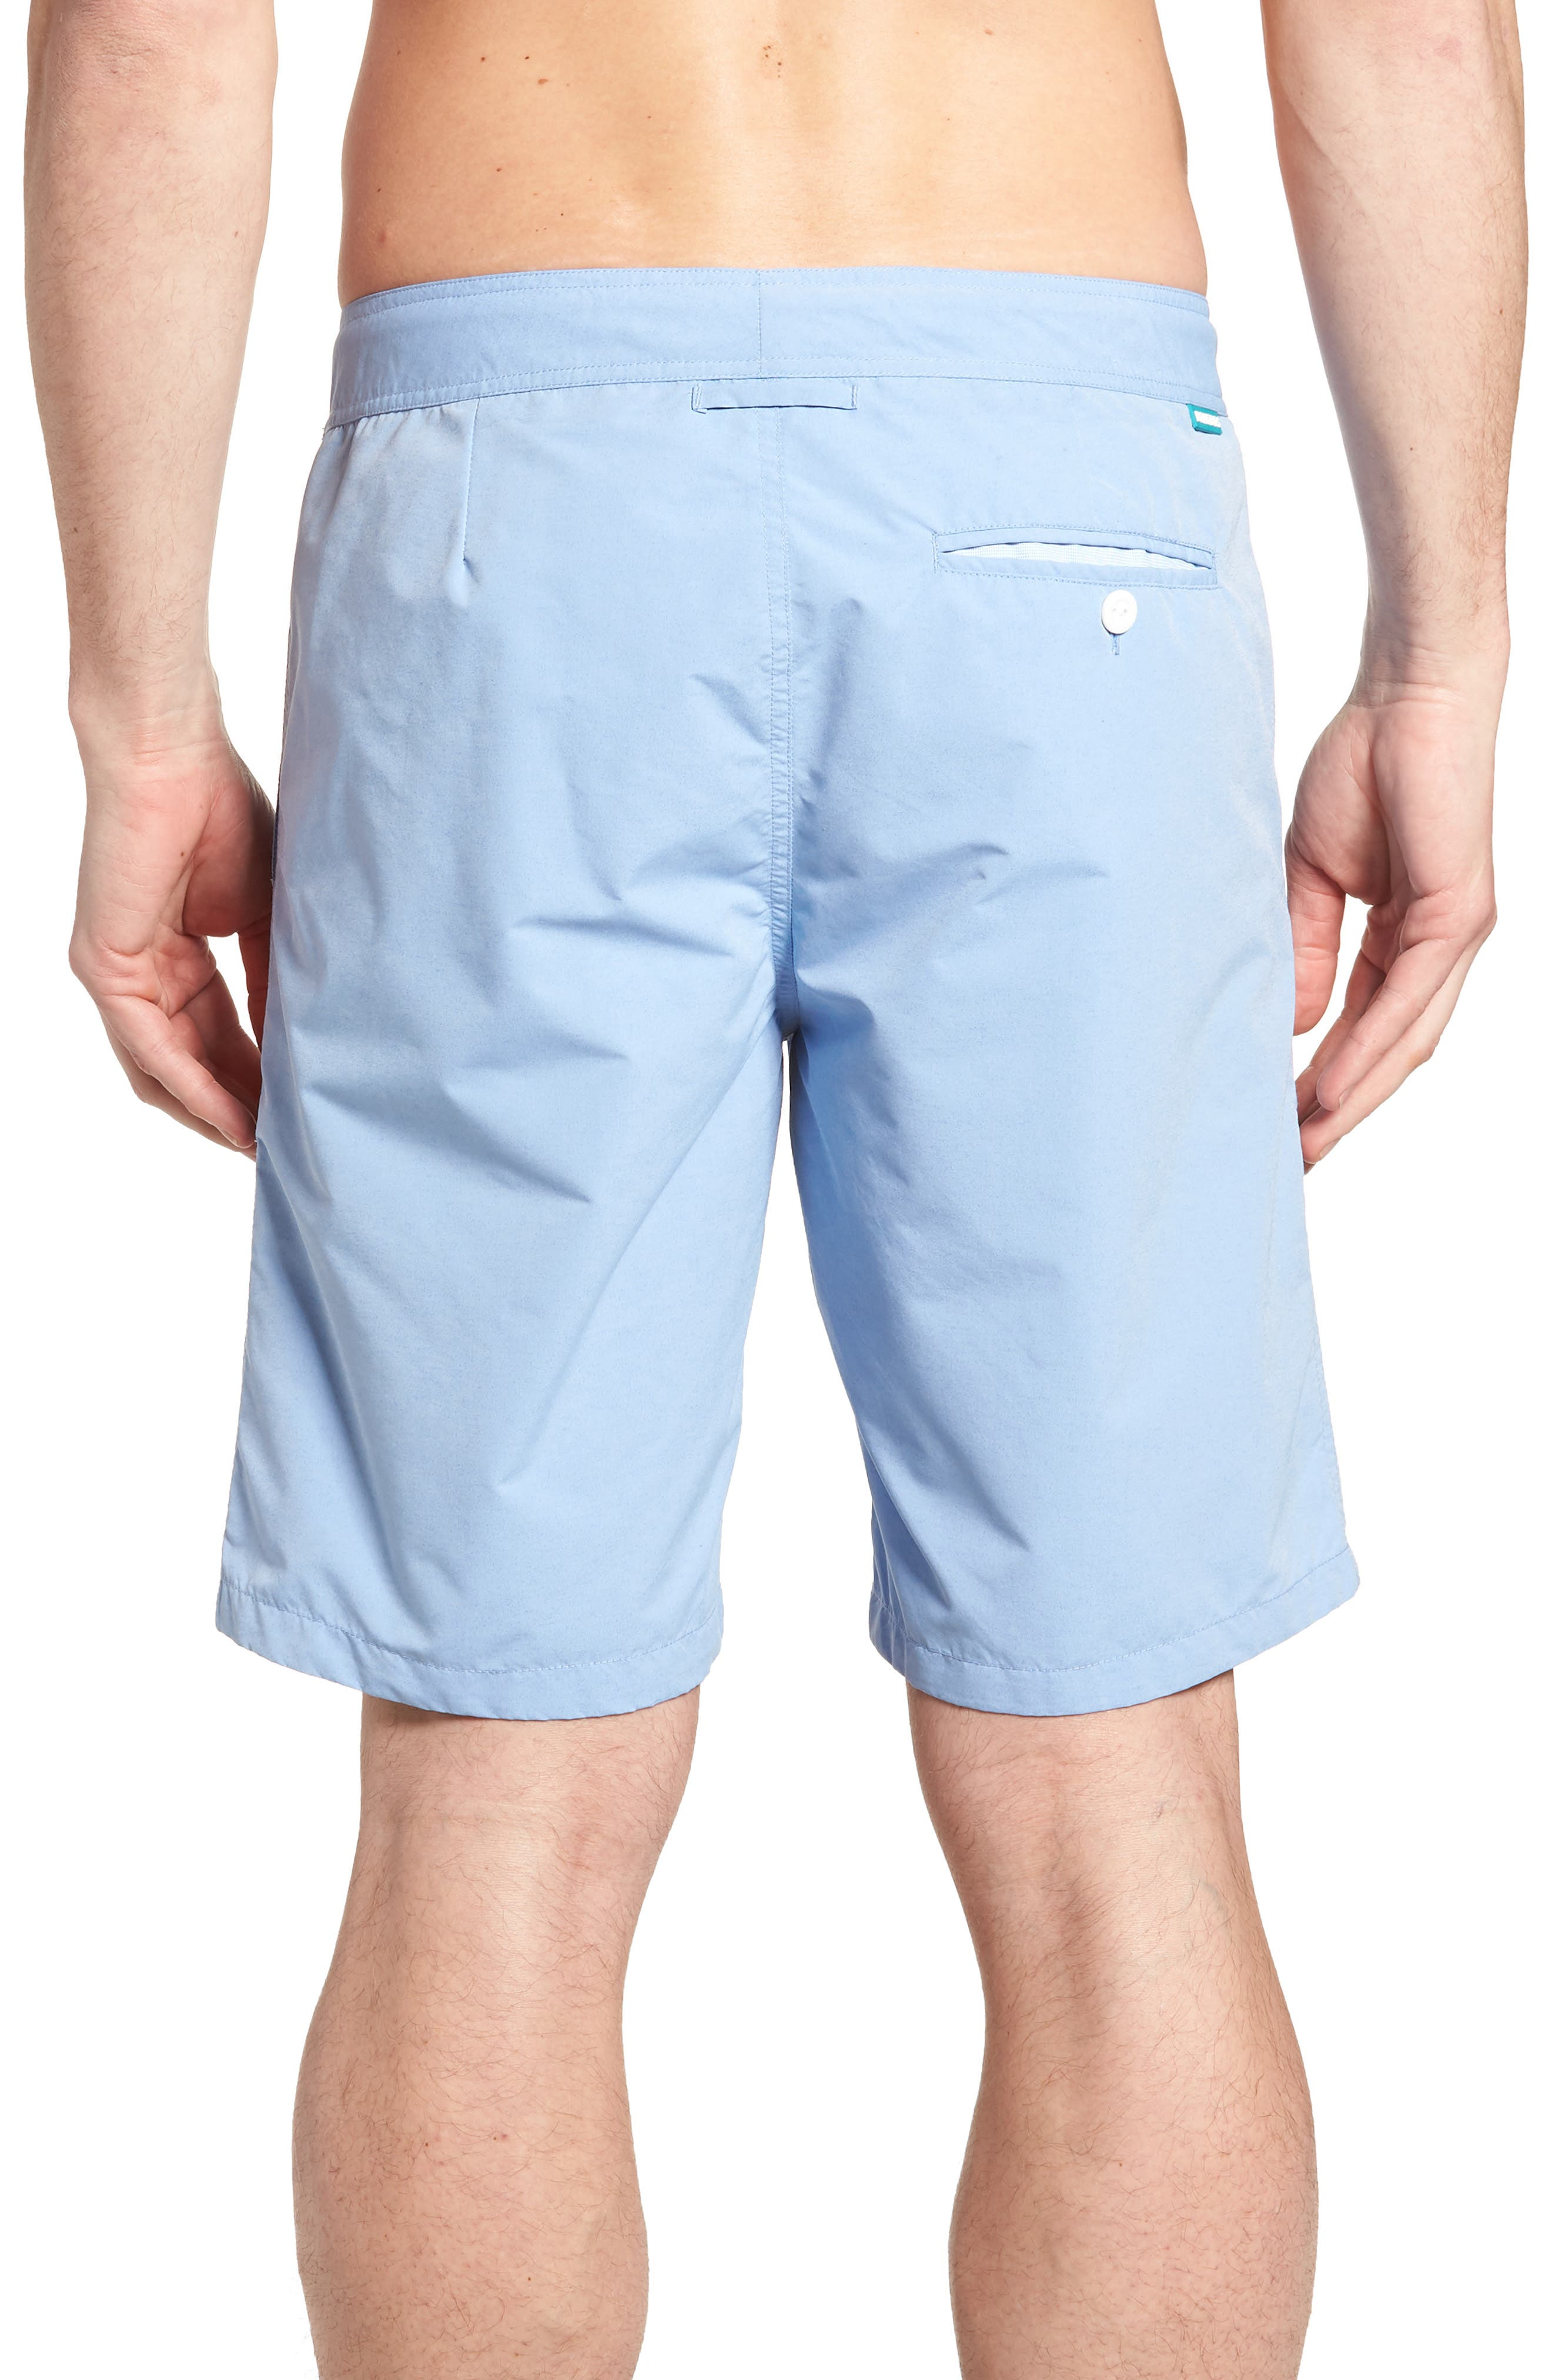 Alternate Image 2  - Bonobos Banzai 9-Inch Swim Trunks